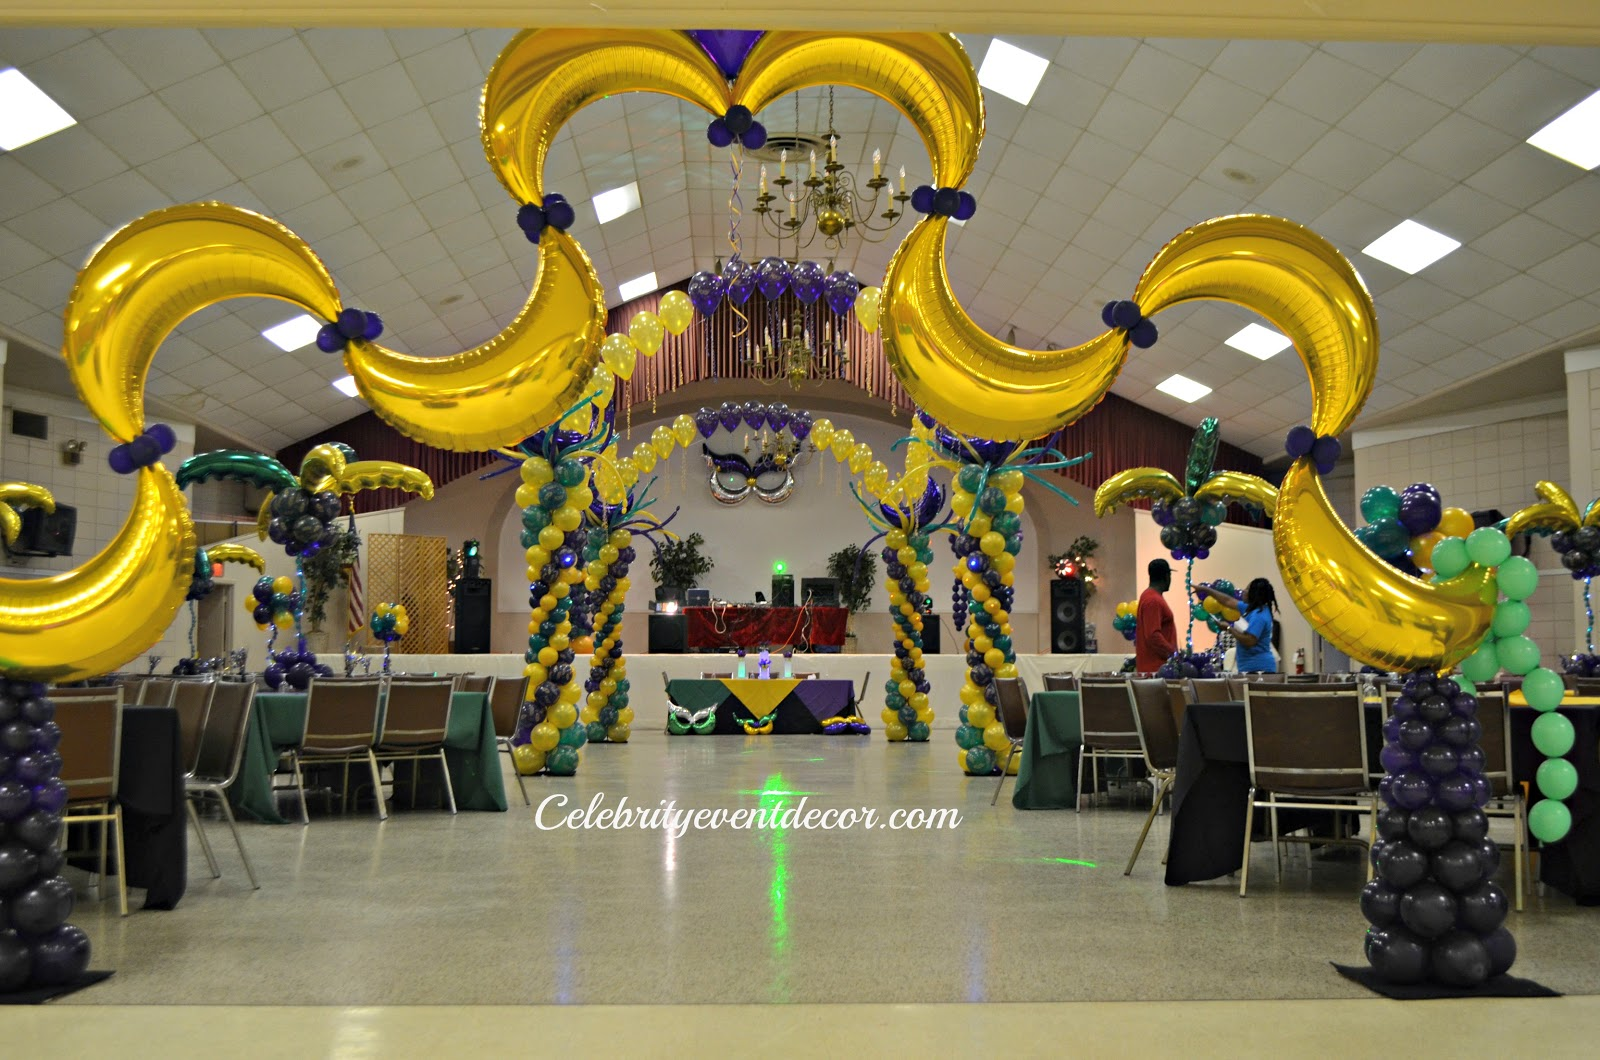 Celebrity Event Decor, LLC: November 2012